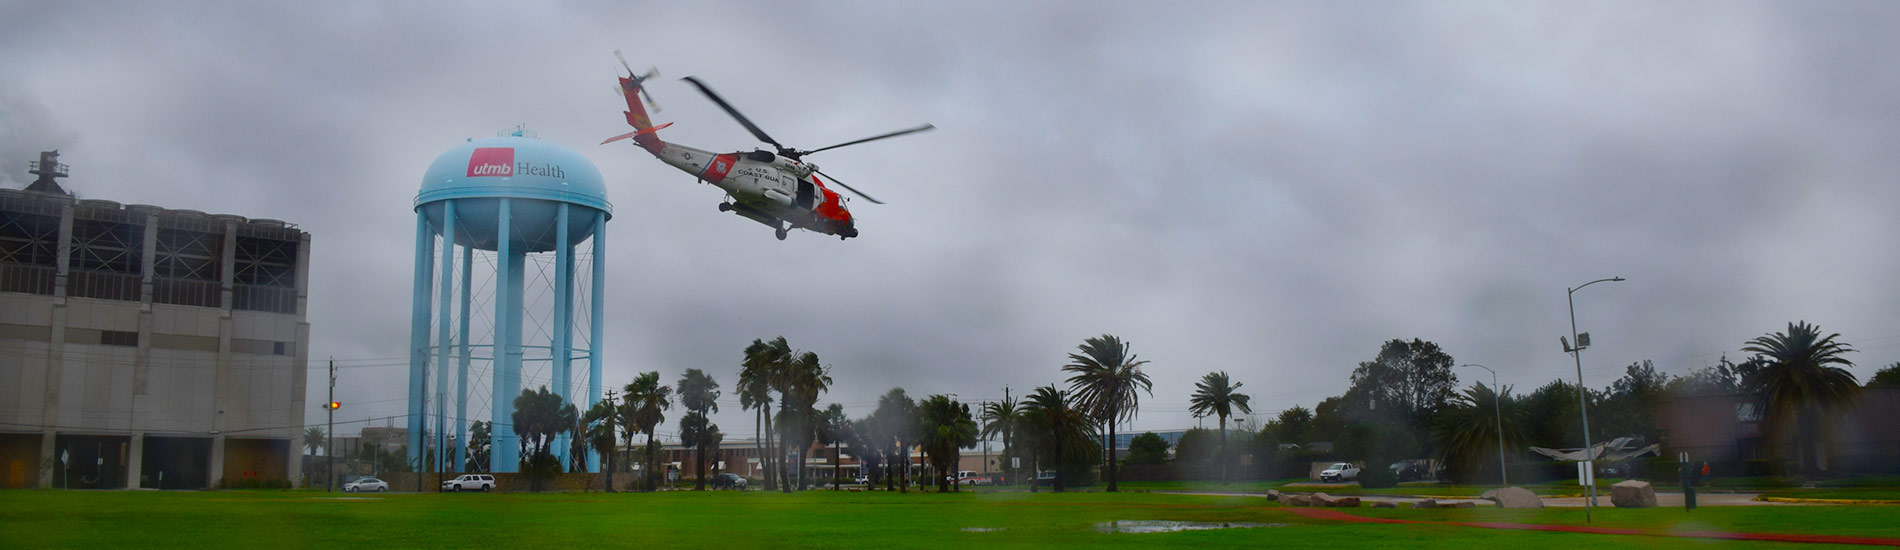 Helicopter Delivering Emergency Supplies